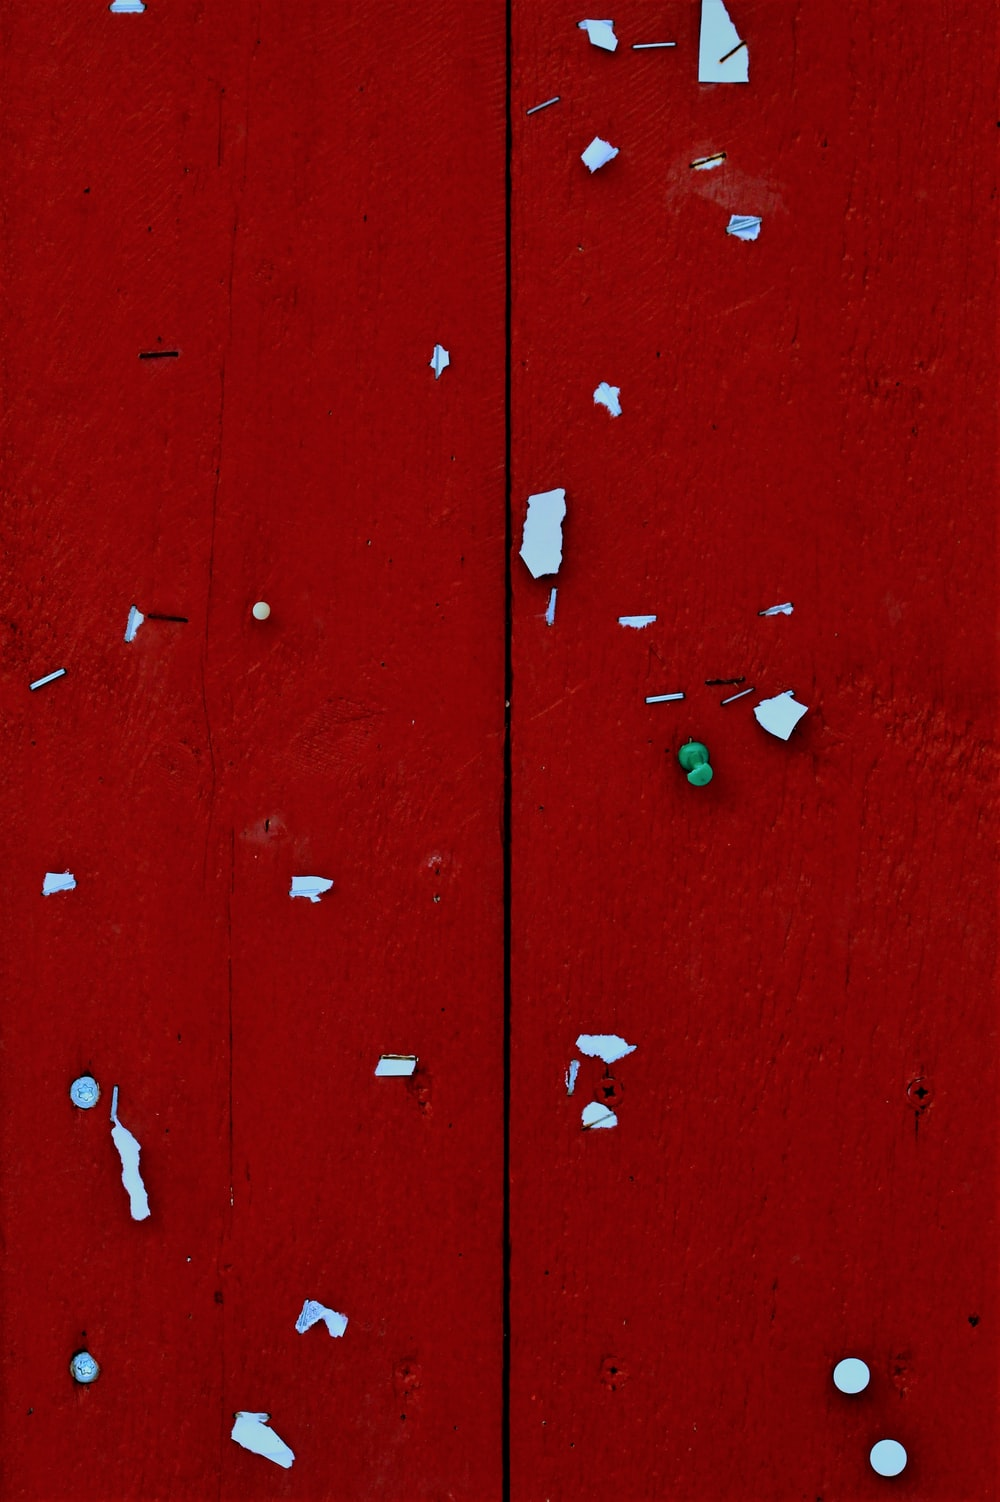 red wooden door with white heart shaped